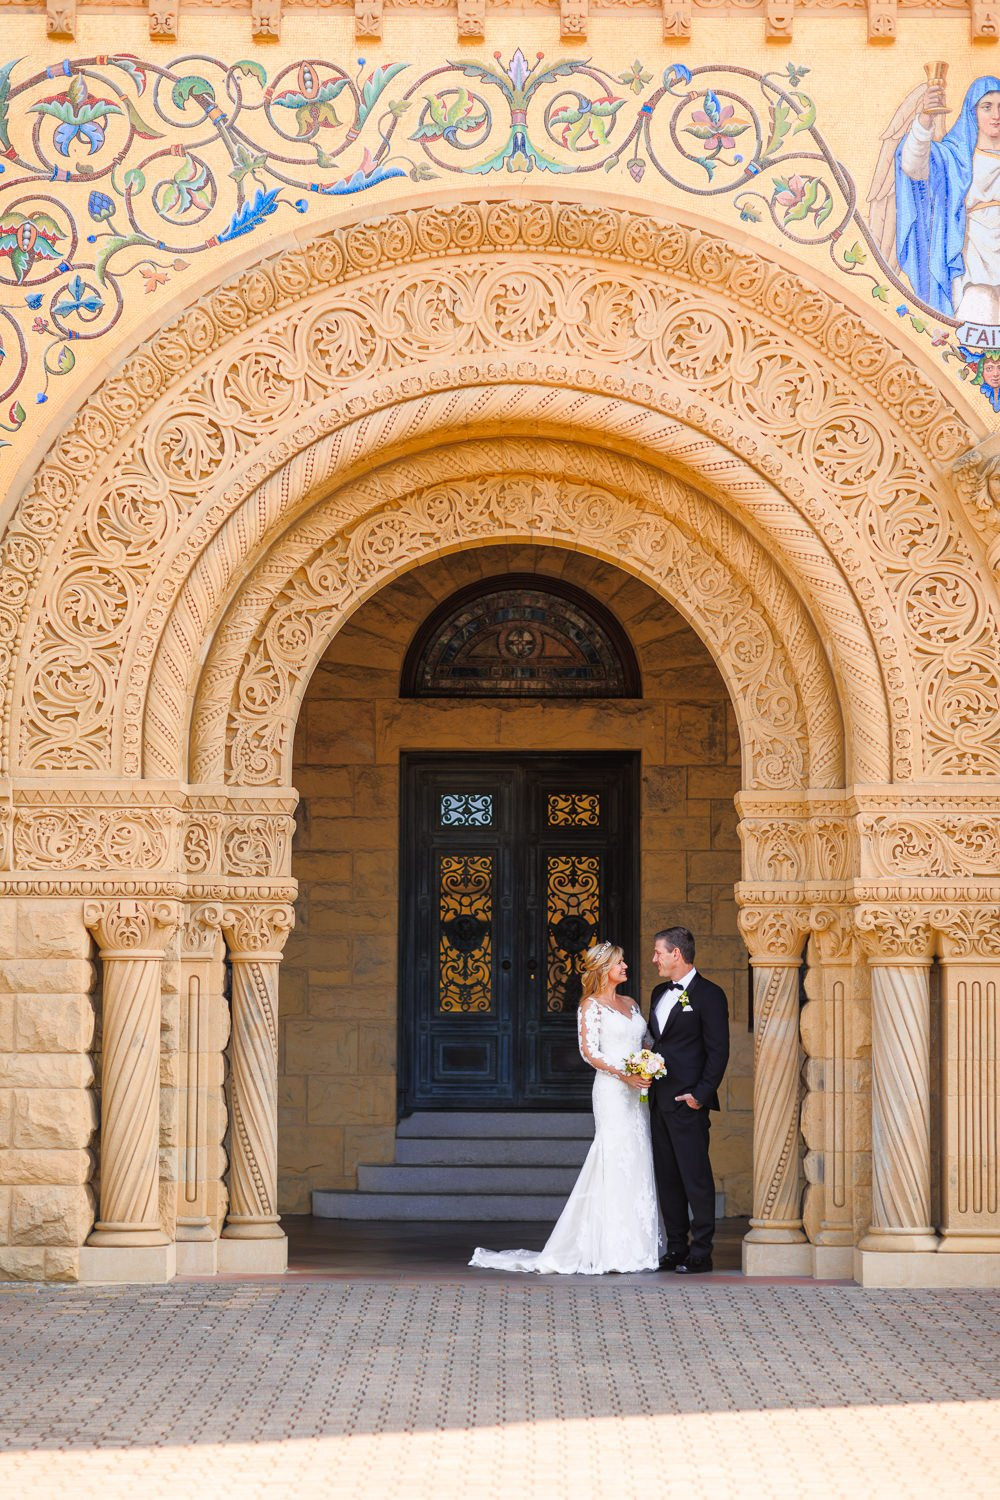 stanford-university-wedding-romantic-portraits-arpit-mehta-san-francisco-photographer-1